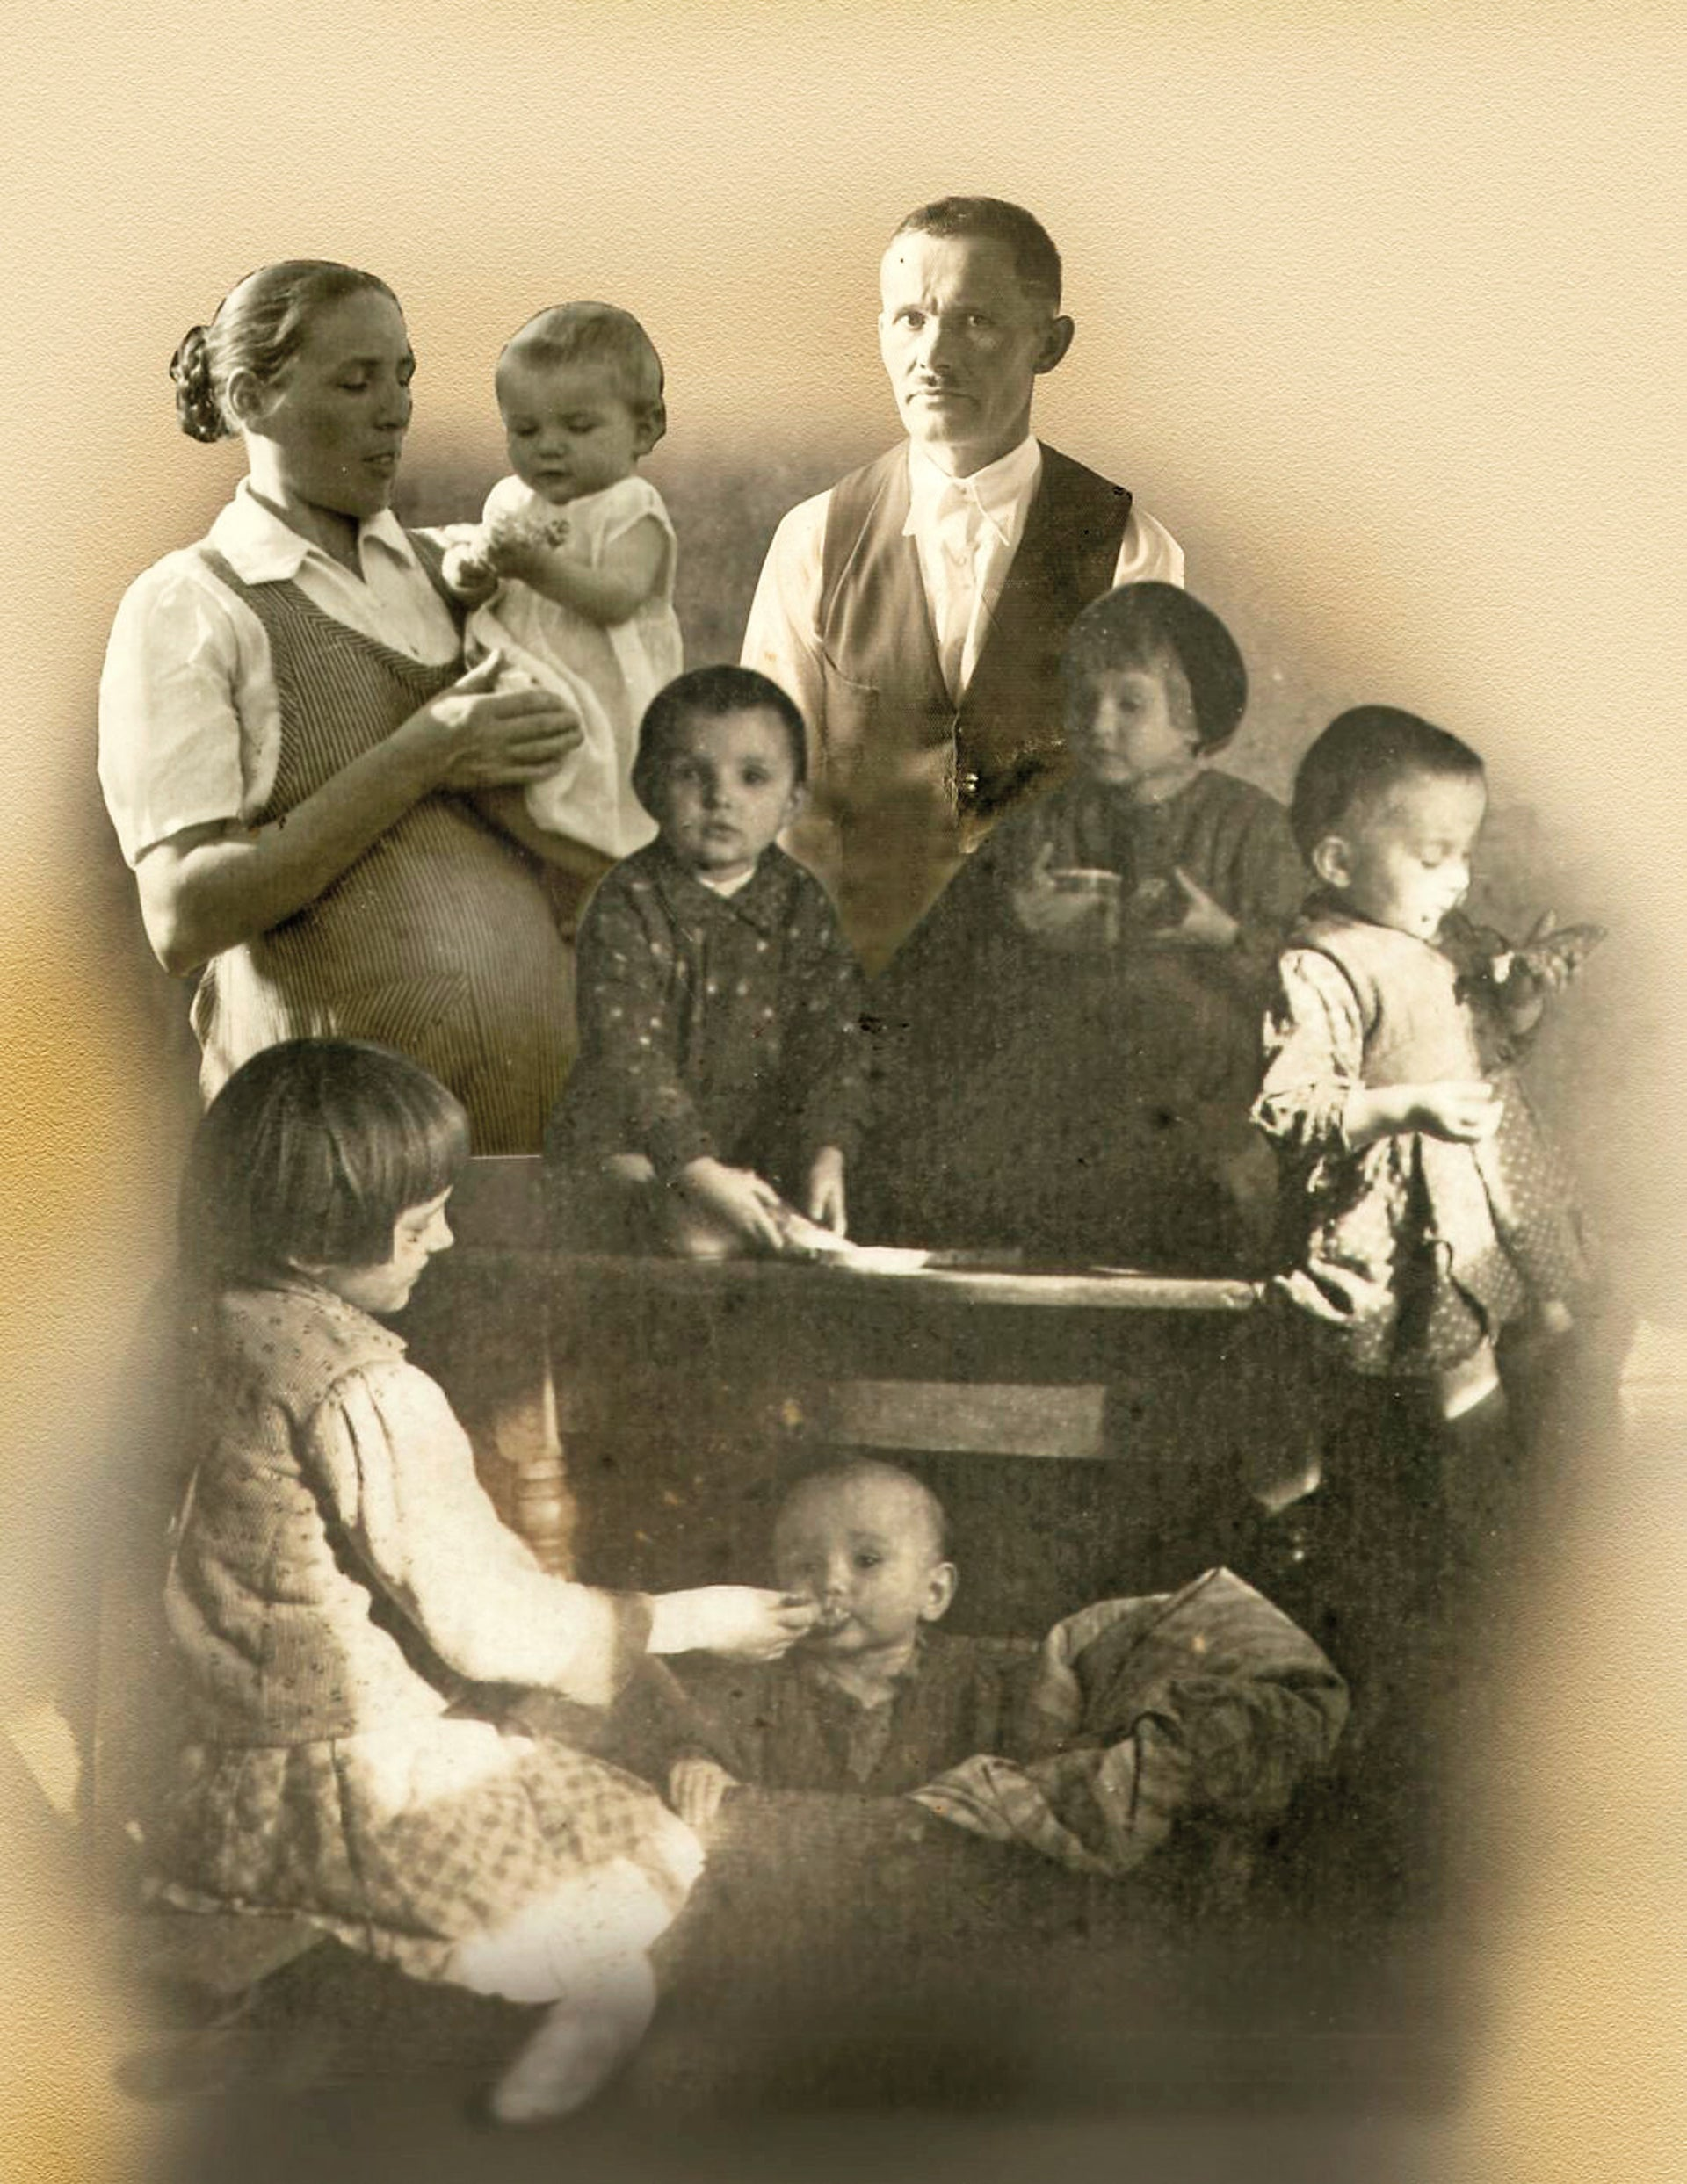 The Polish Ulma family, which hid Jews during the Holocaust and was murdered by the Nazis.